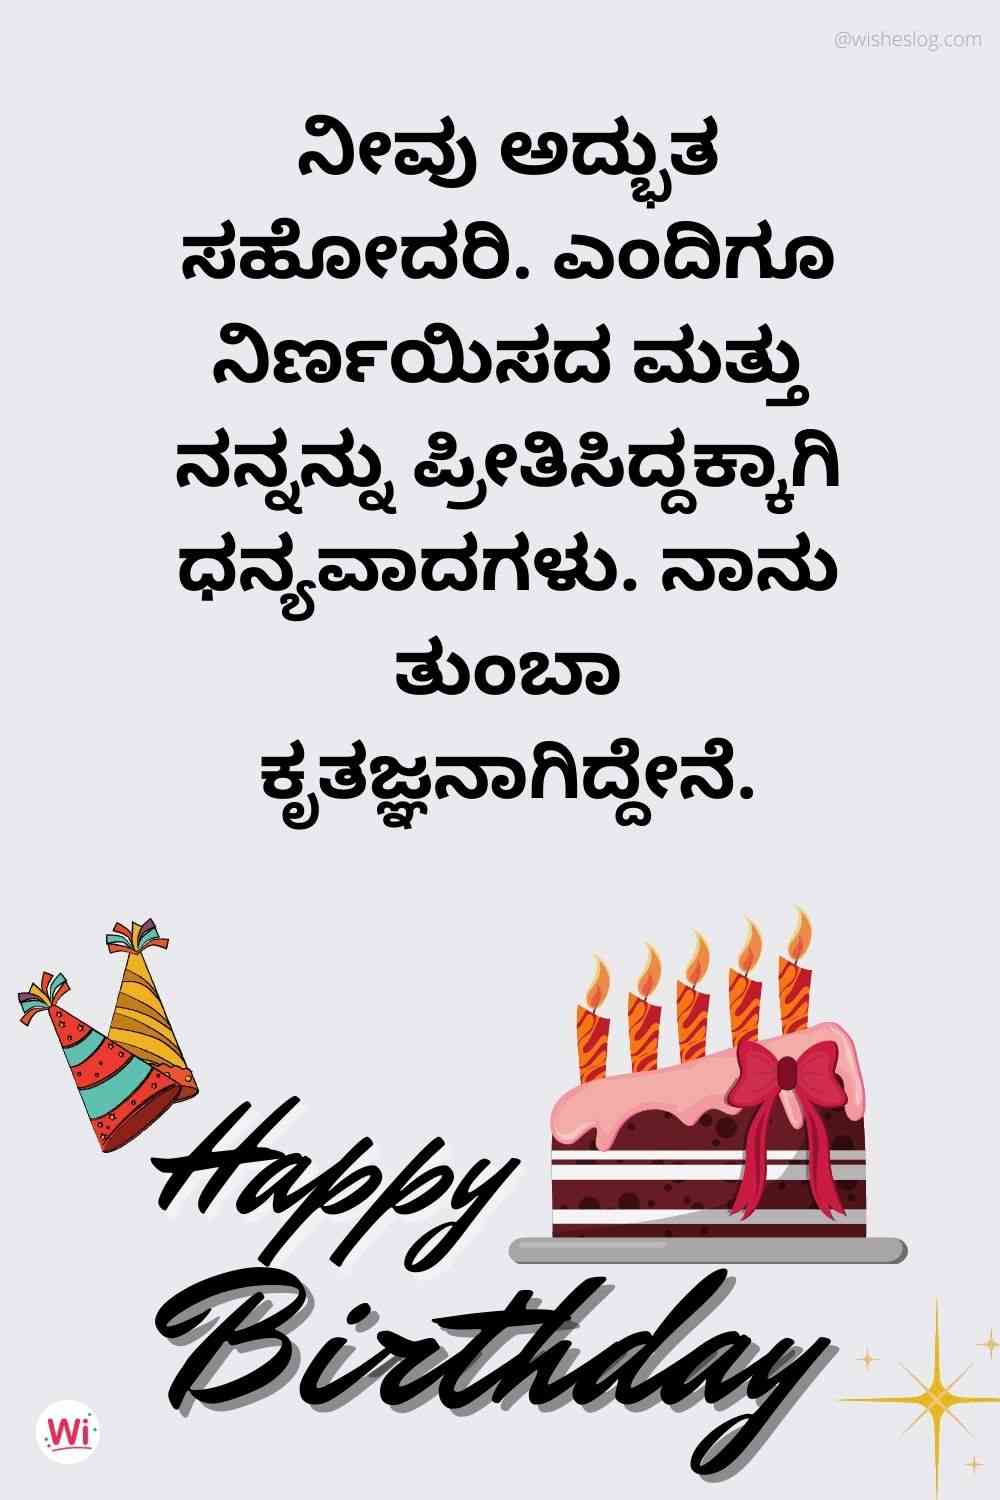 happy birthday wishes for sister in kannada